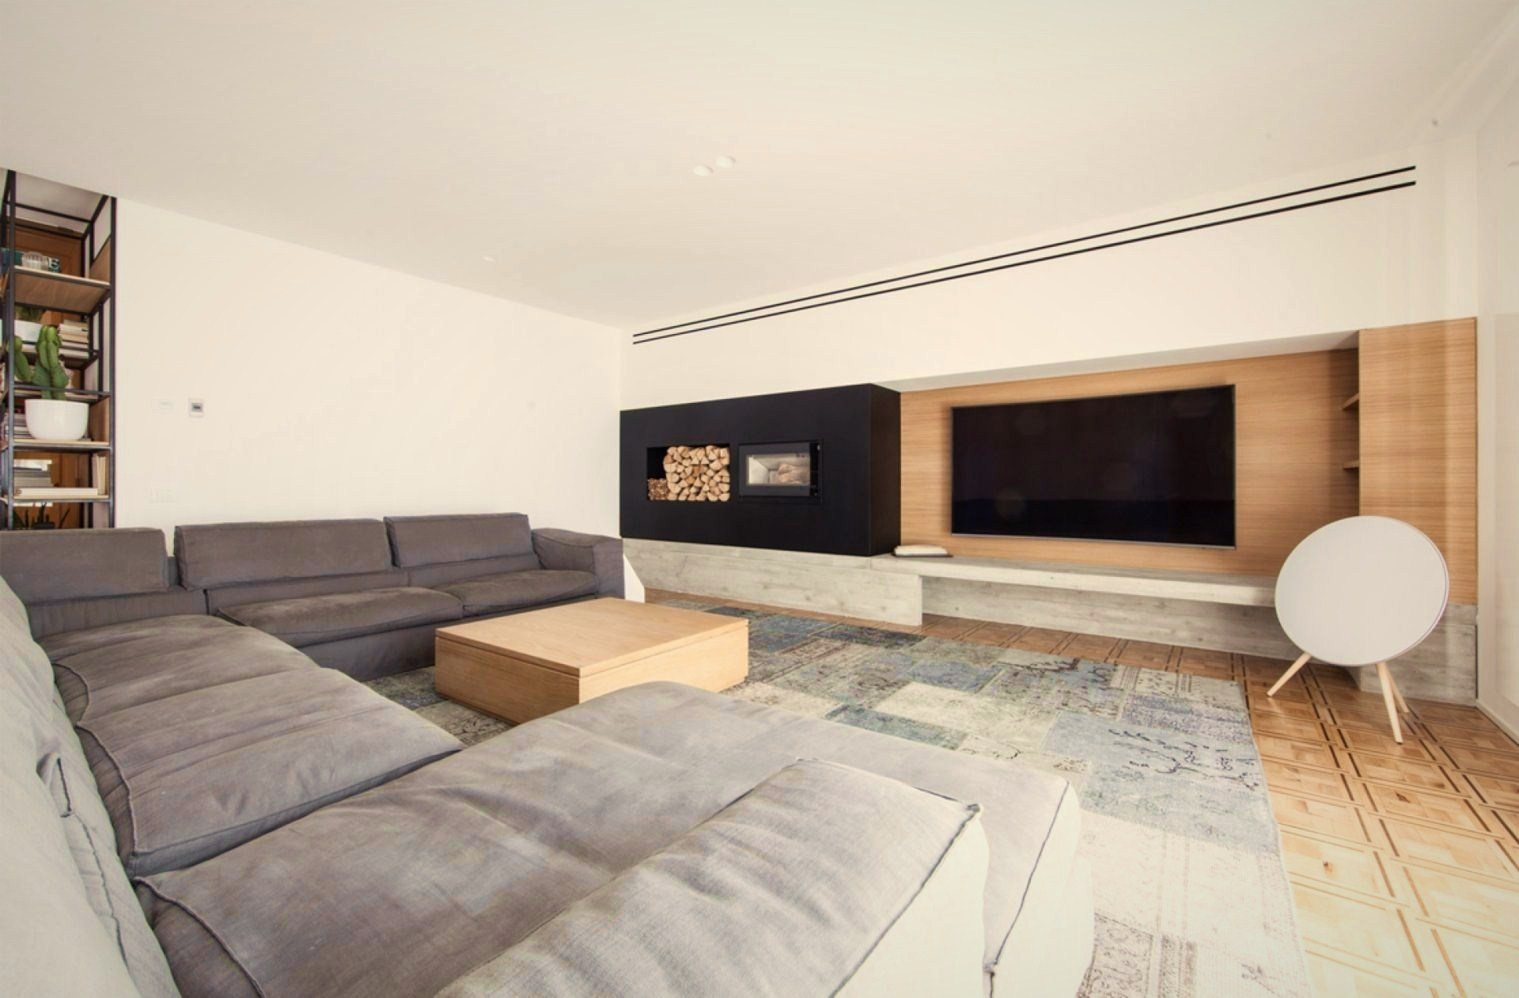 L shape sofa in greyish cover in modern living room House AB (3)